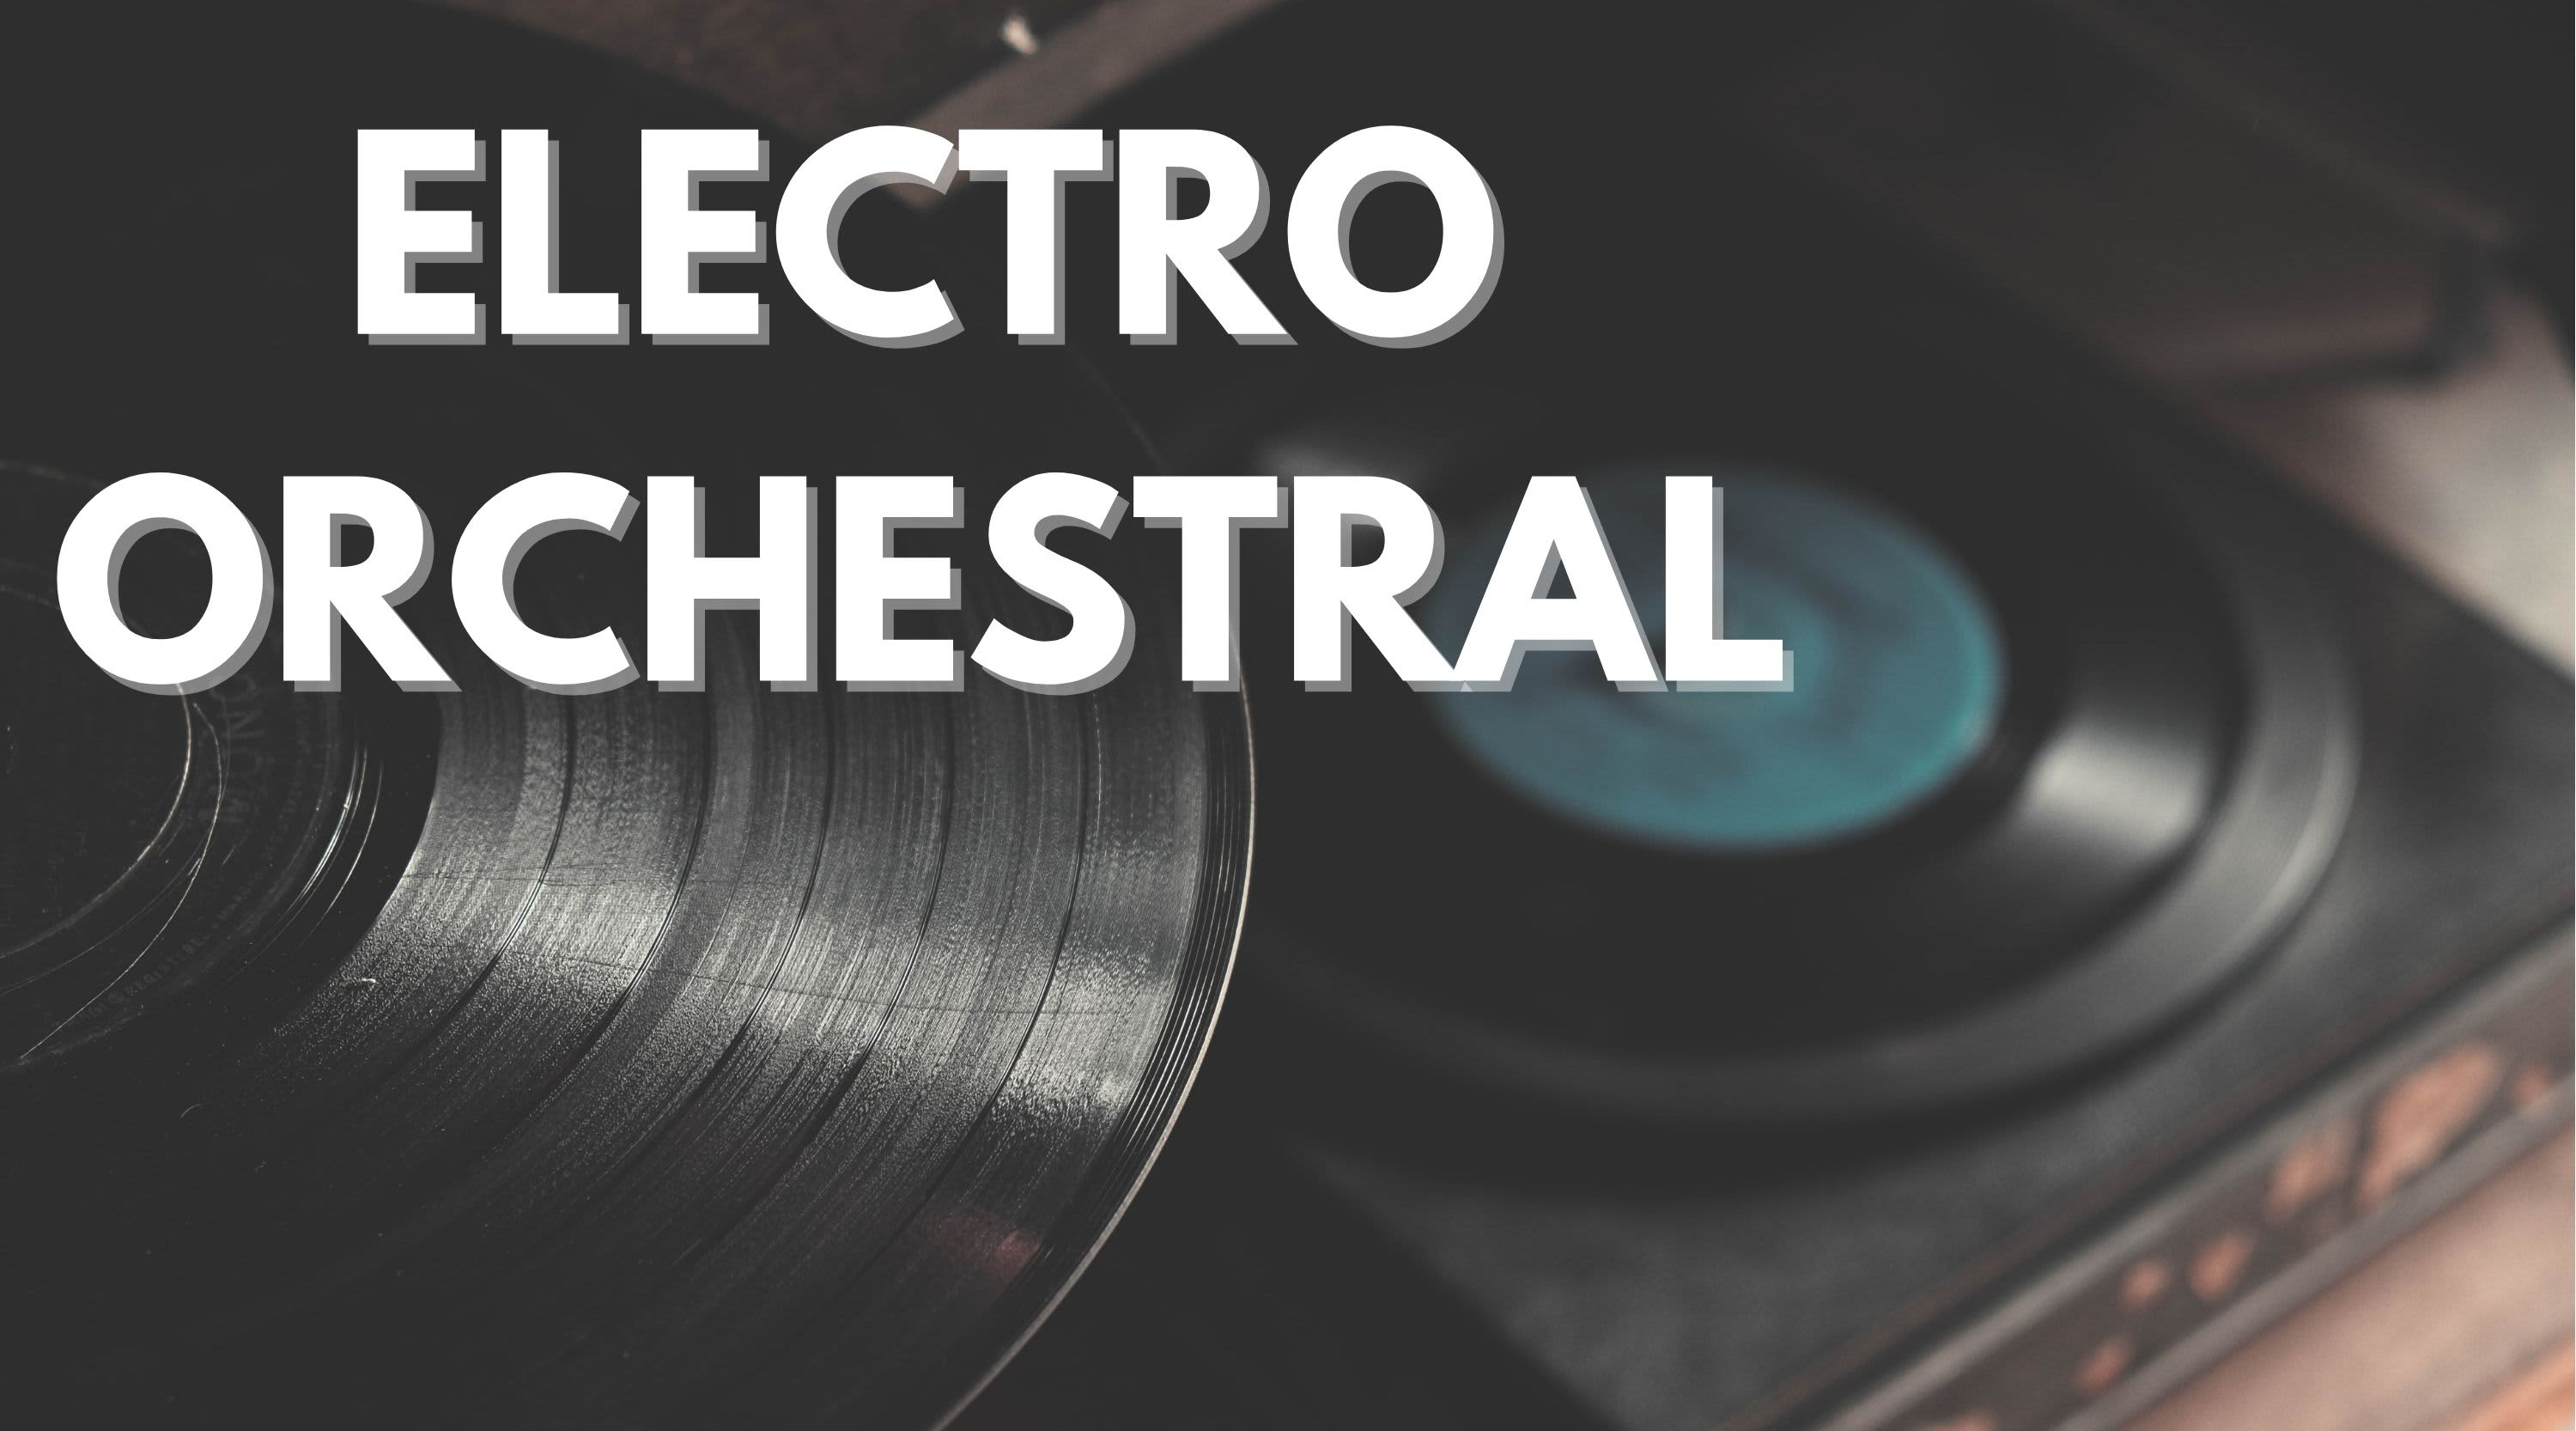 Electro Orchestral